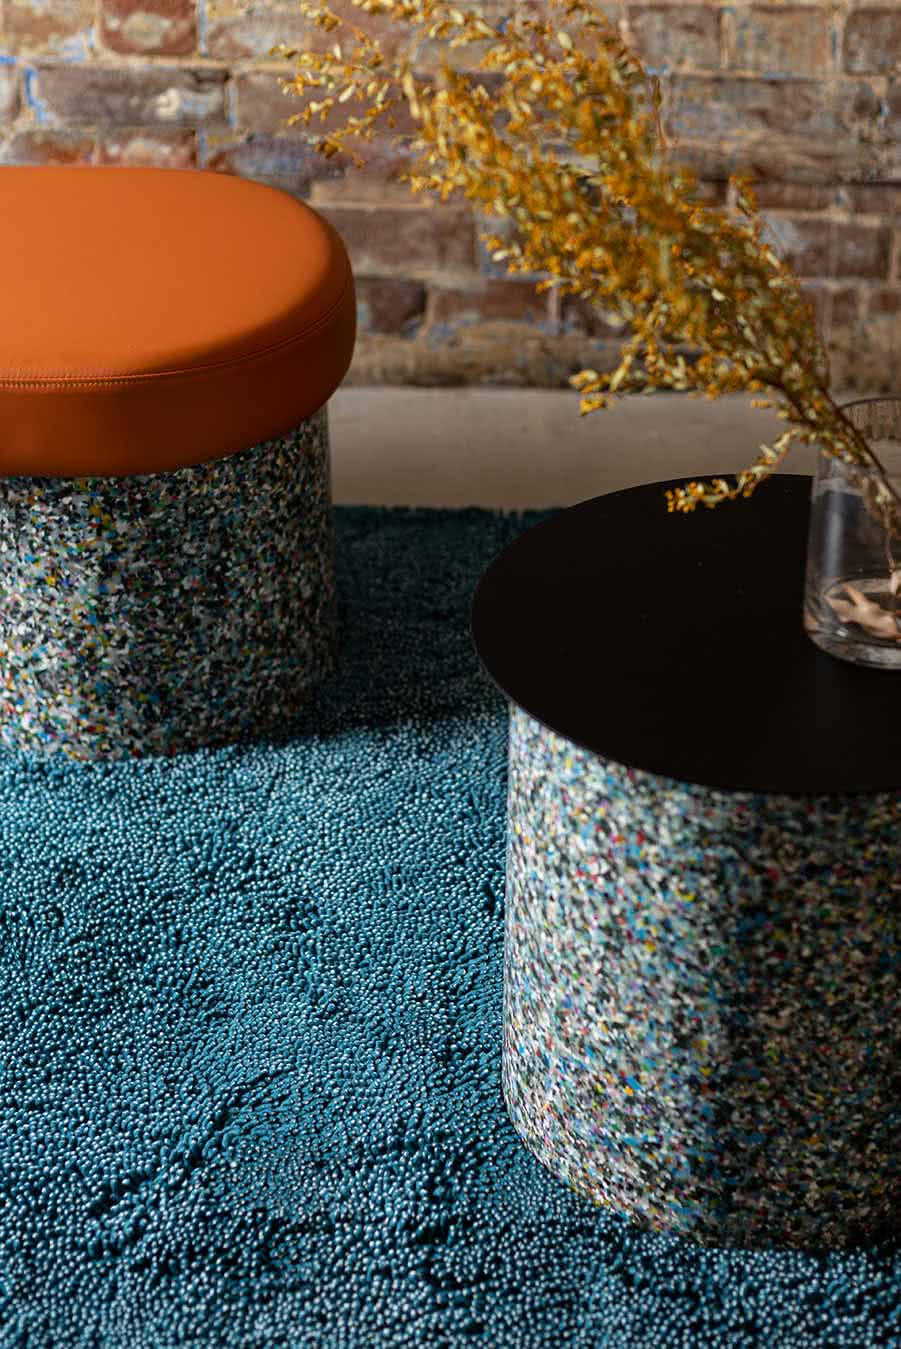 Styled close up view of textured Coral Shag rug in teal blue colour